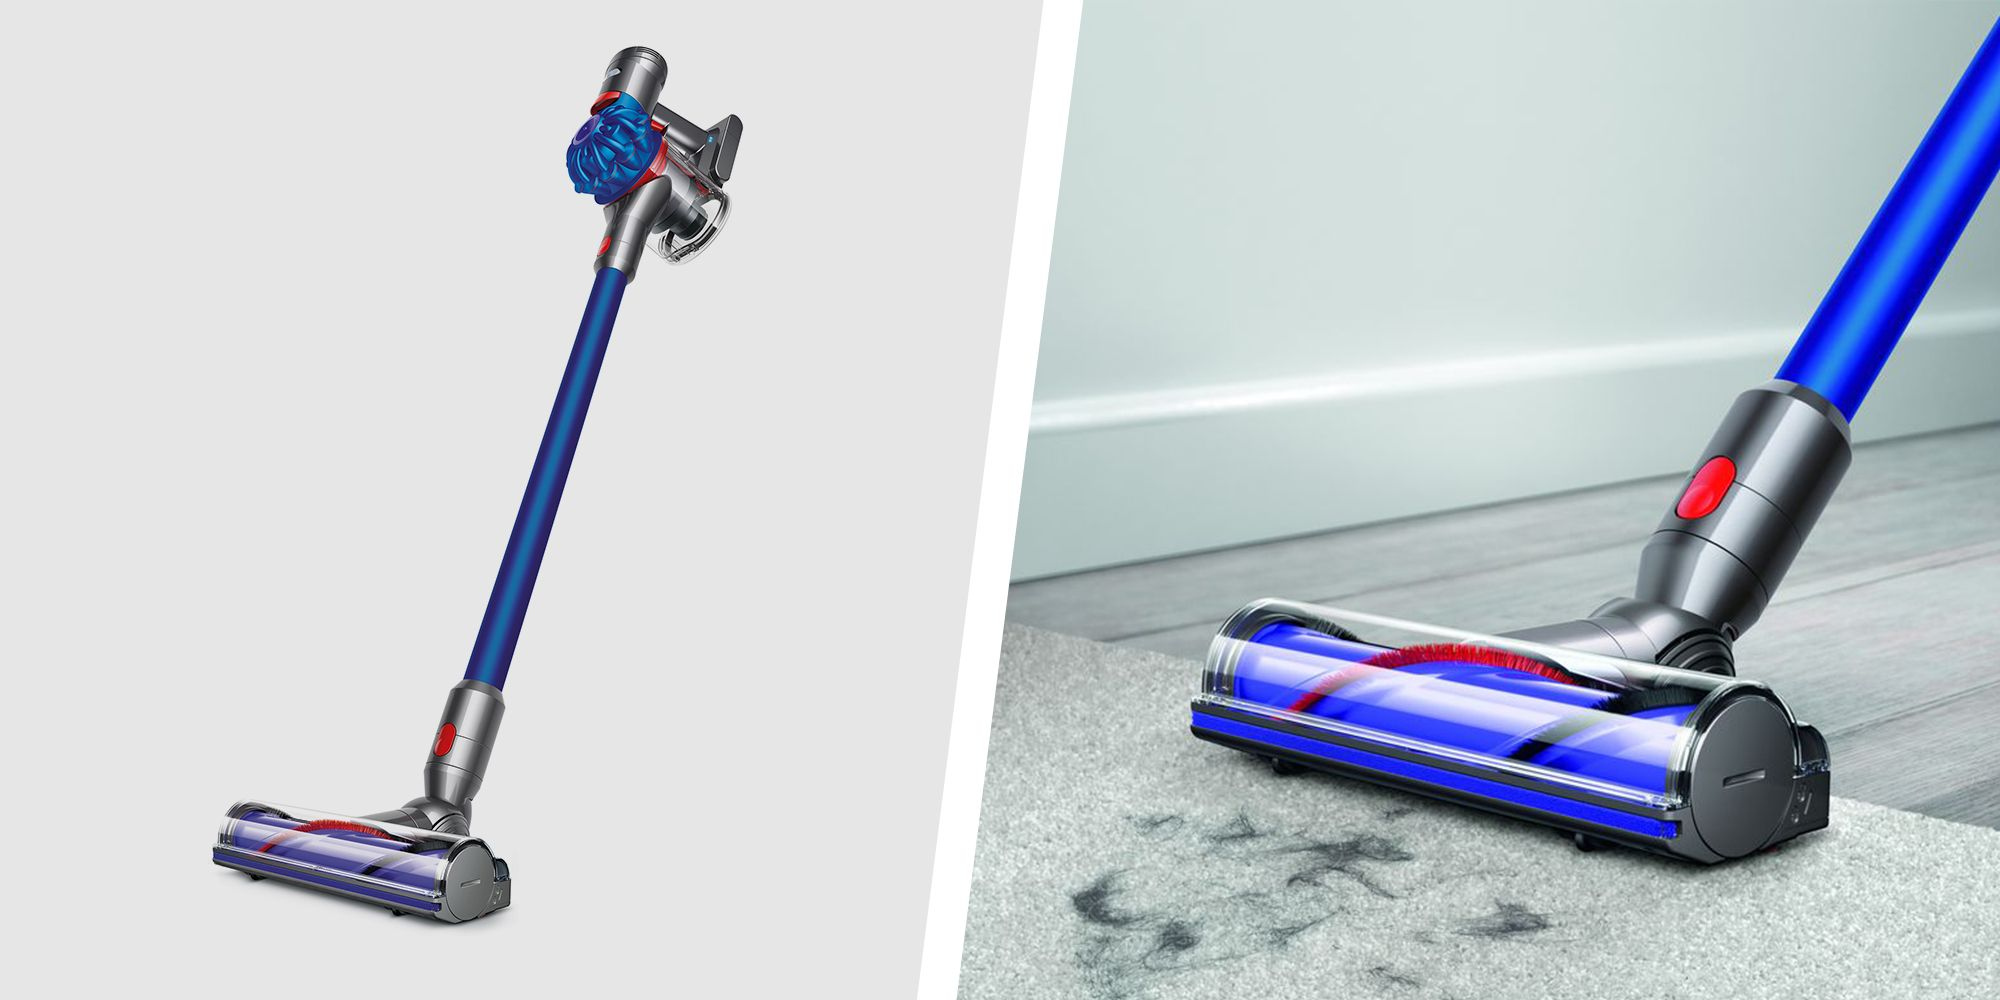 Walmart's Dyson Vacuum Sale Proves Cyber Week Deals are Far From Over